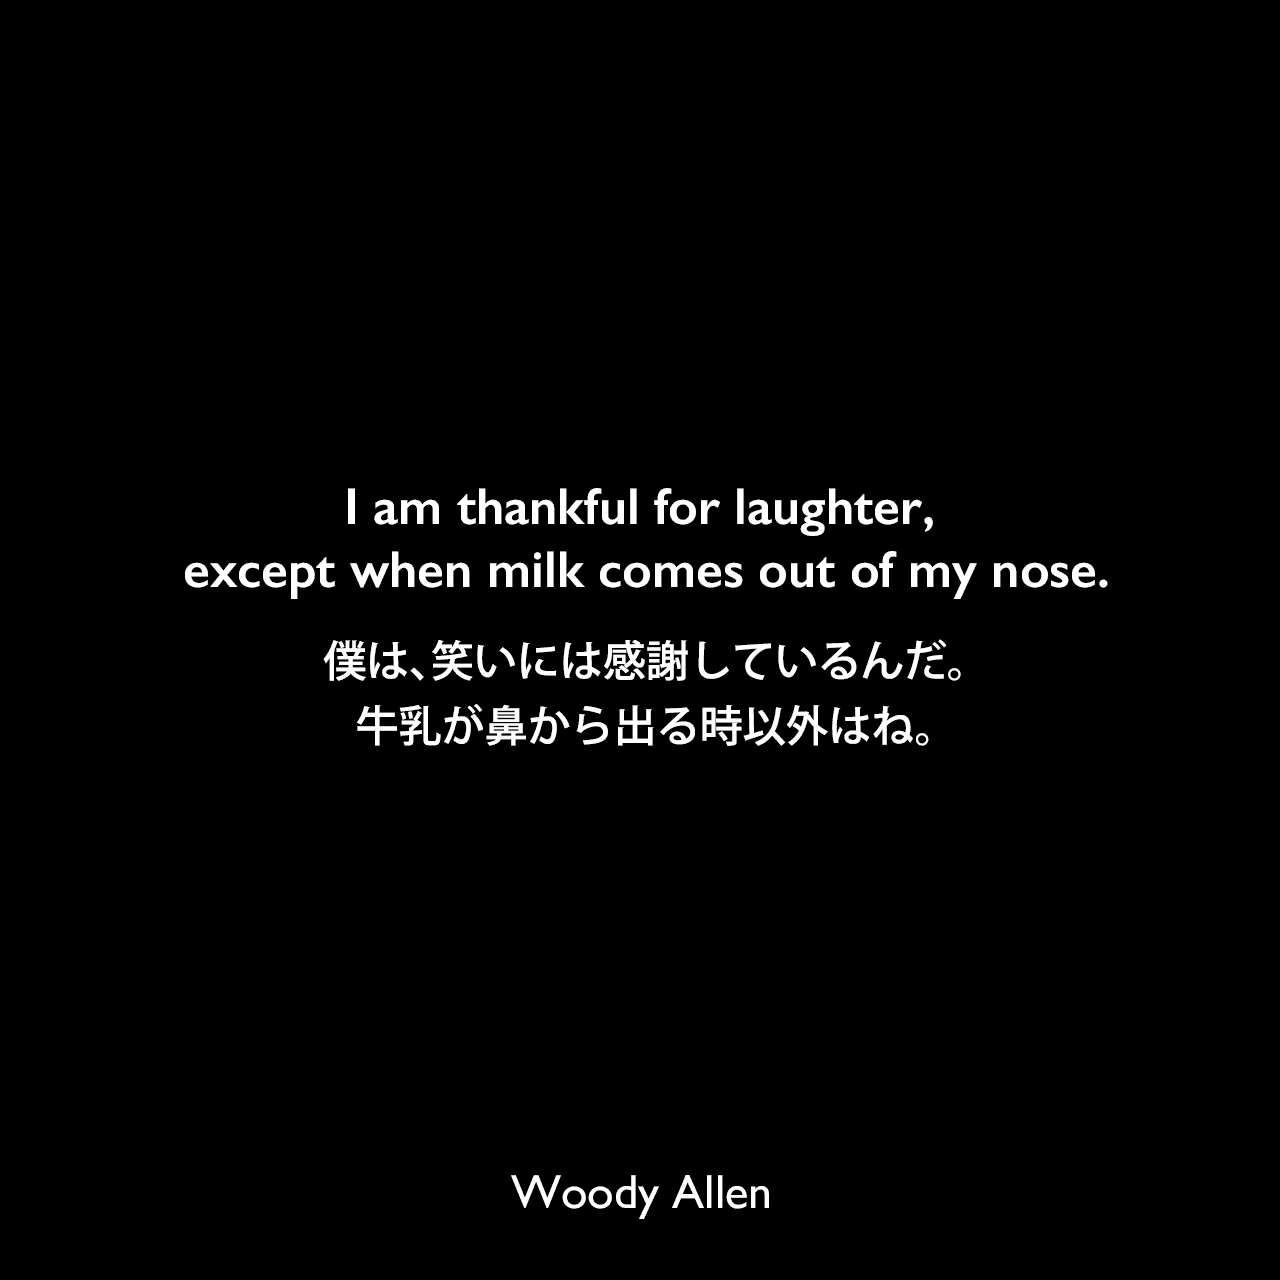 I am thankful for laughter, except when milk comes out of my nose.僕は、笑いには感謝しているんだ。牛乳が鼻から出る時以外はね。Woody Allen